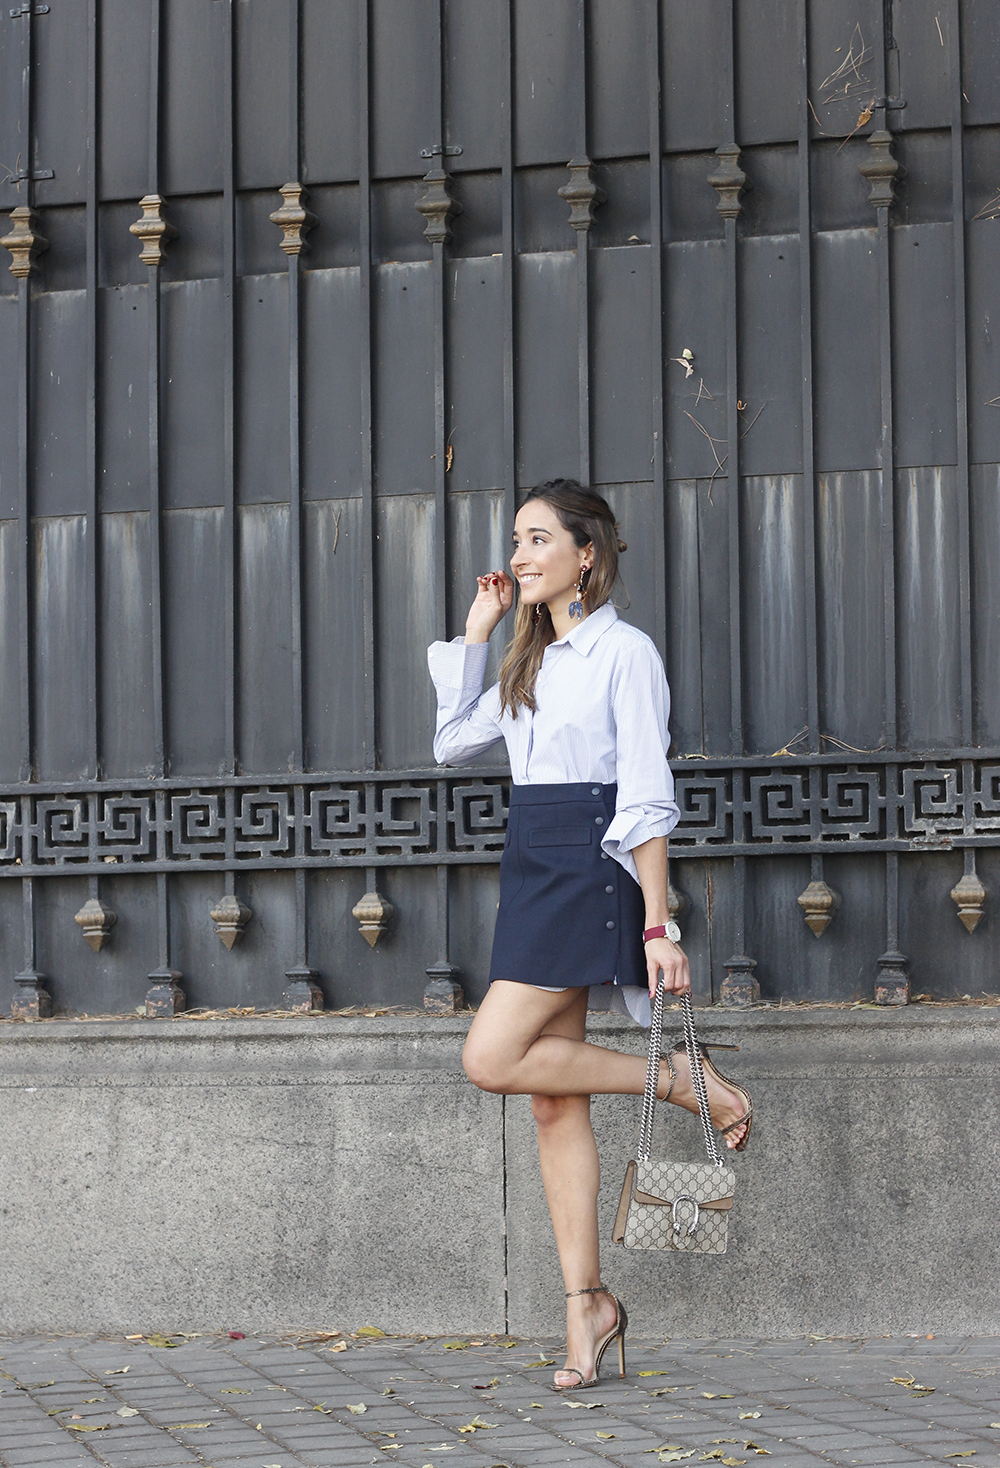 striped shirt blue navy skirt gucci bag heels outfit fashion style06